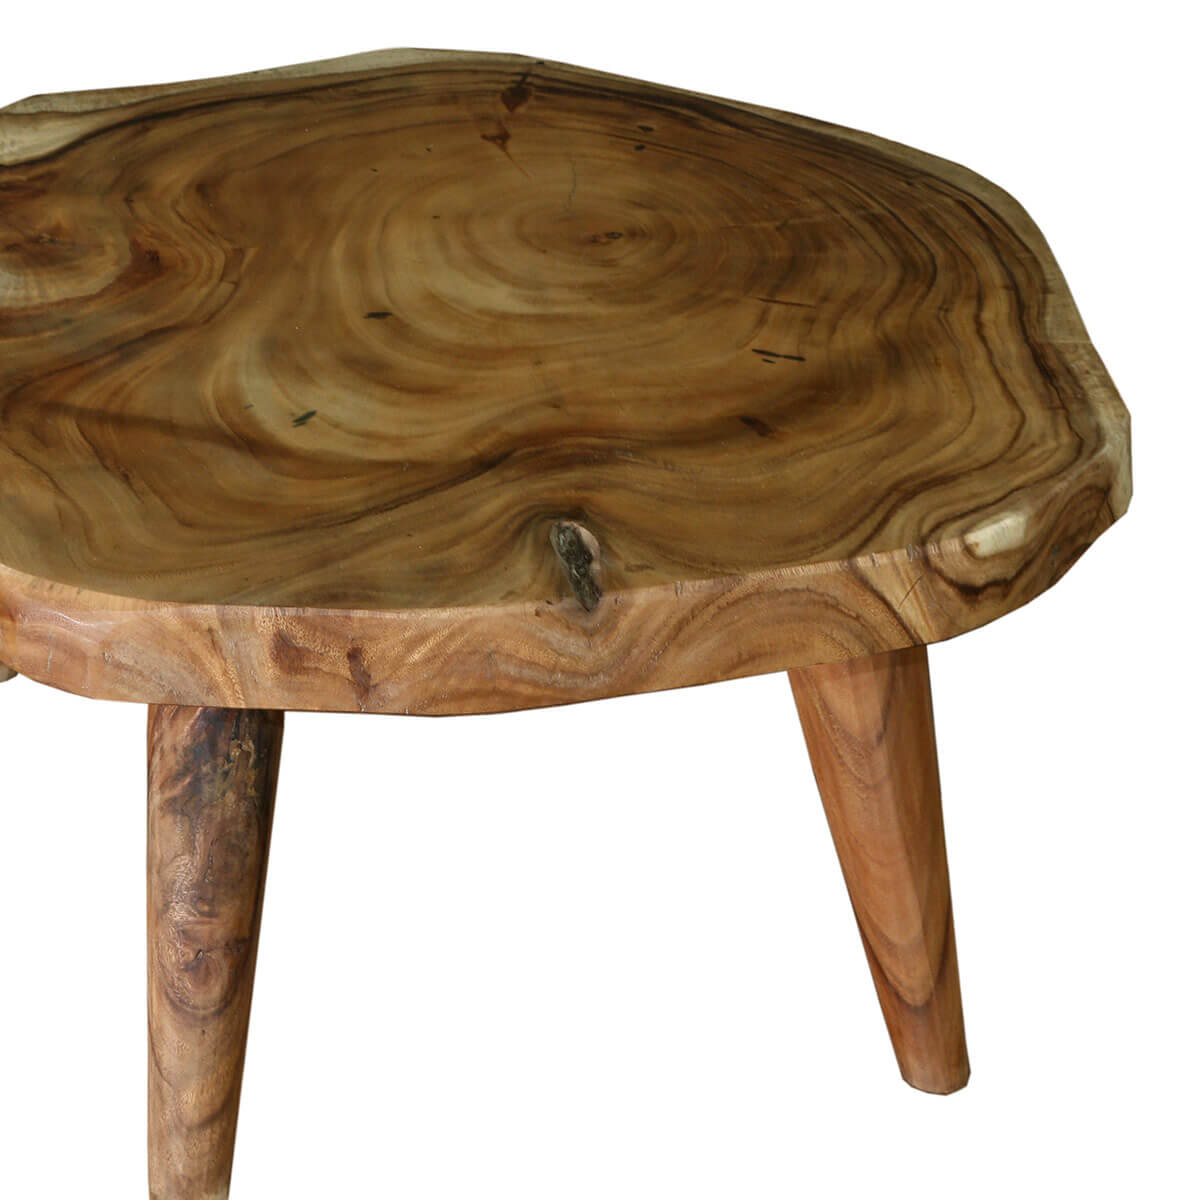 Large Tree Stump Coffee Table: Escambia Tree Stump Live Edge Round Coffee Table